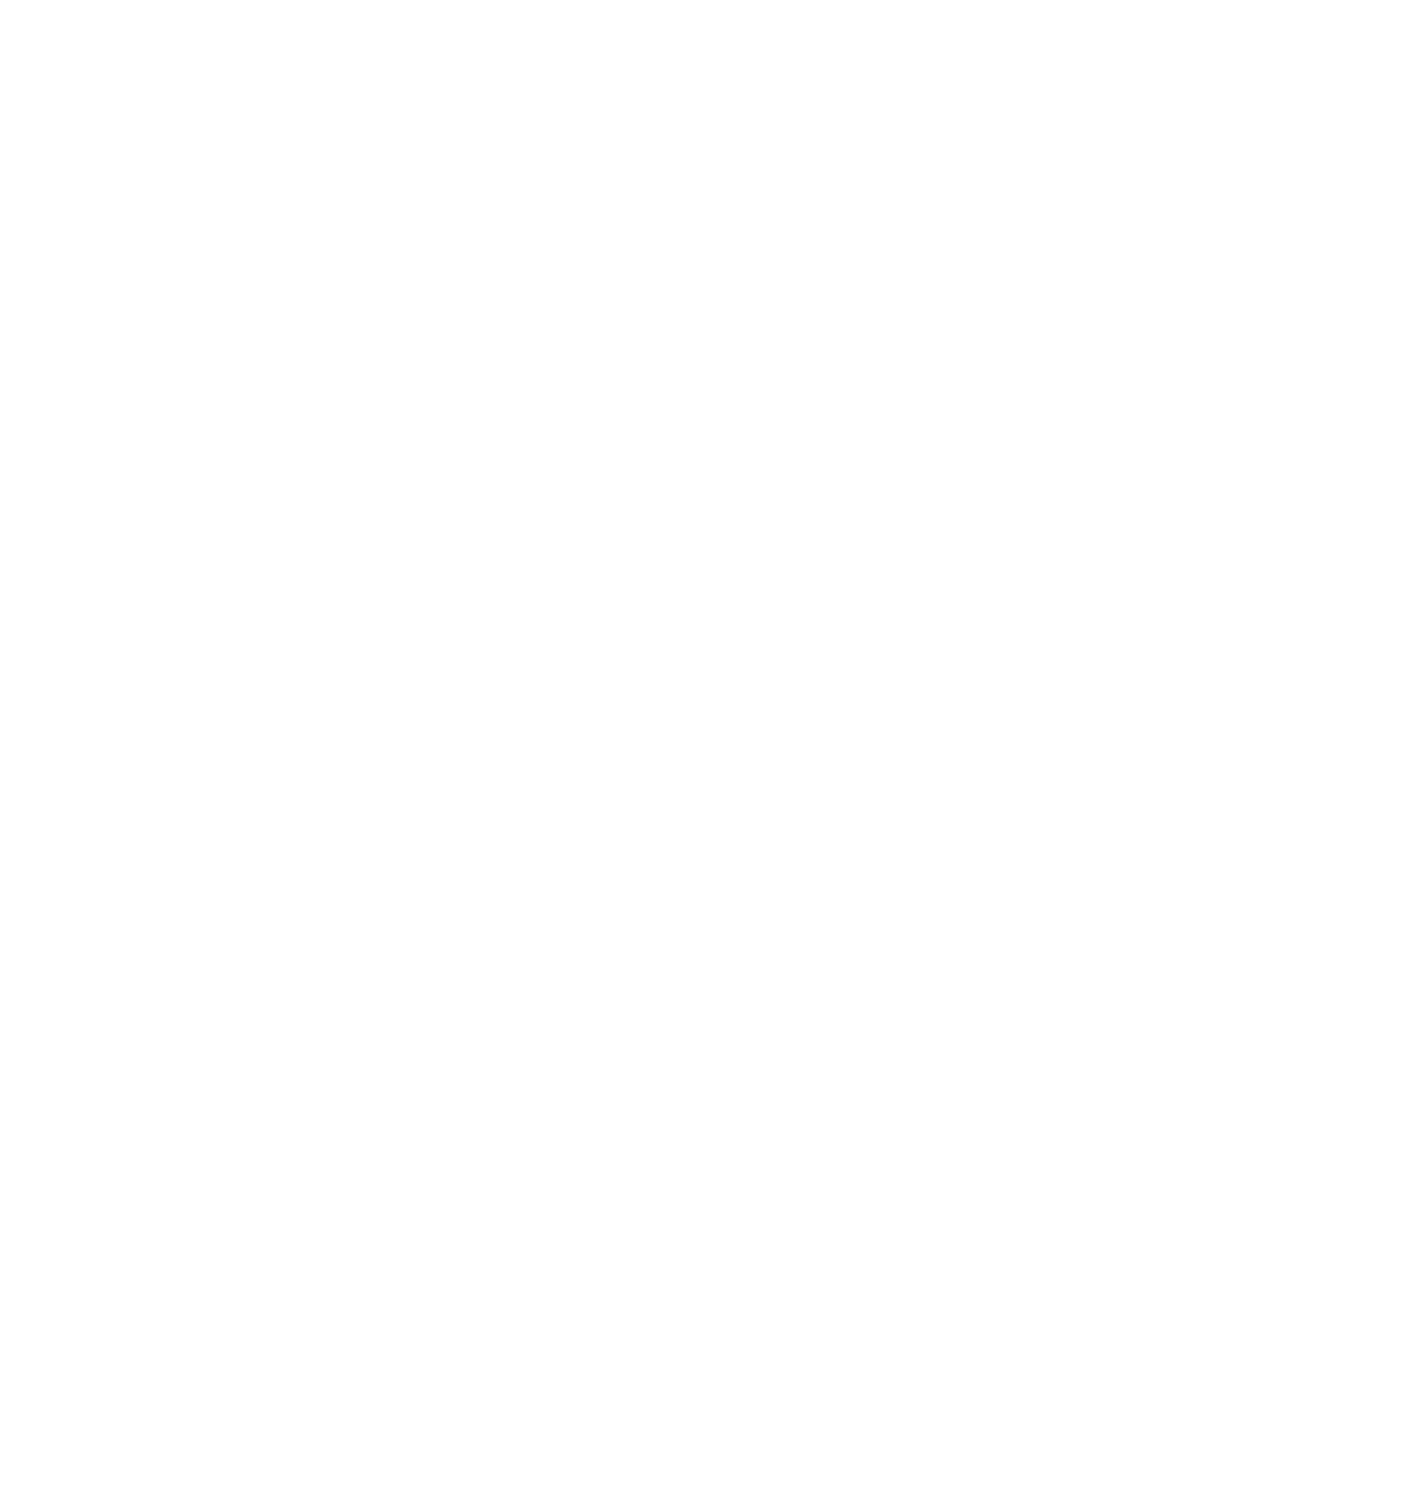 Vendor Neutral Badge 2021